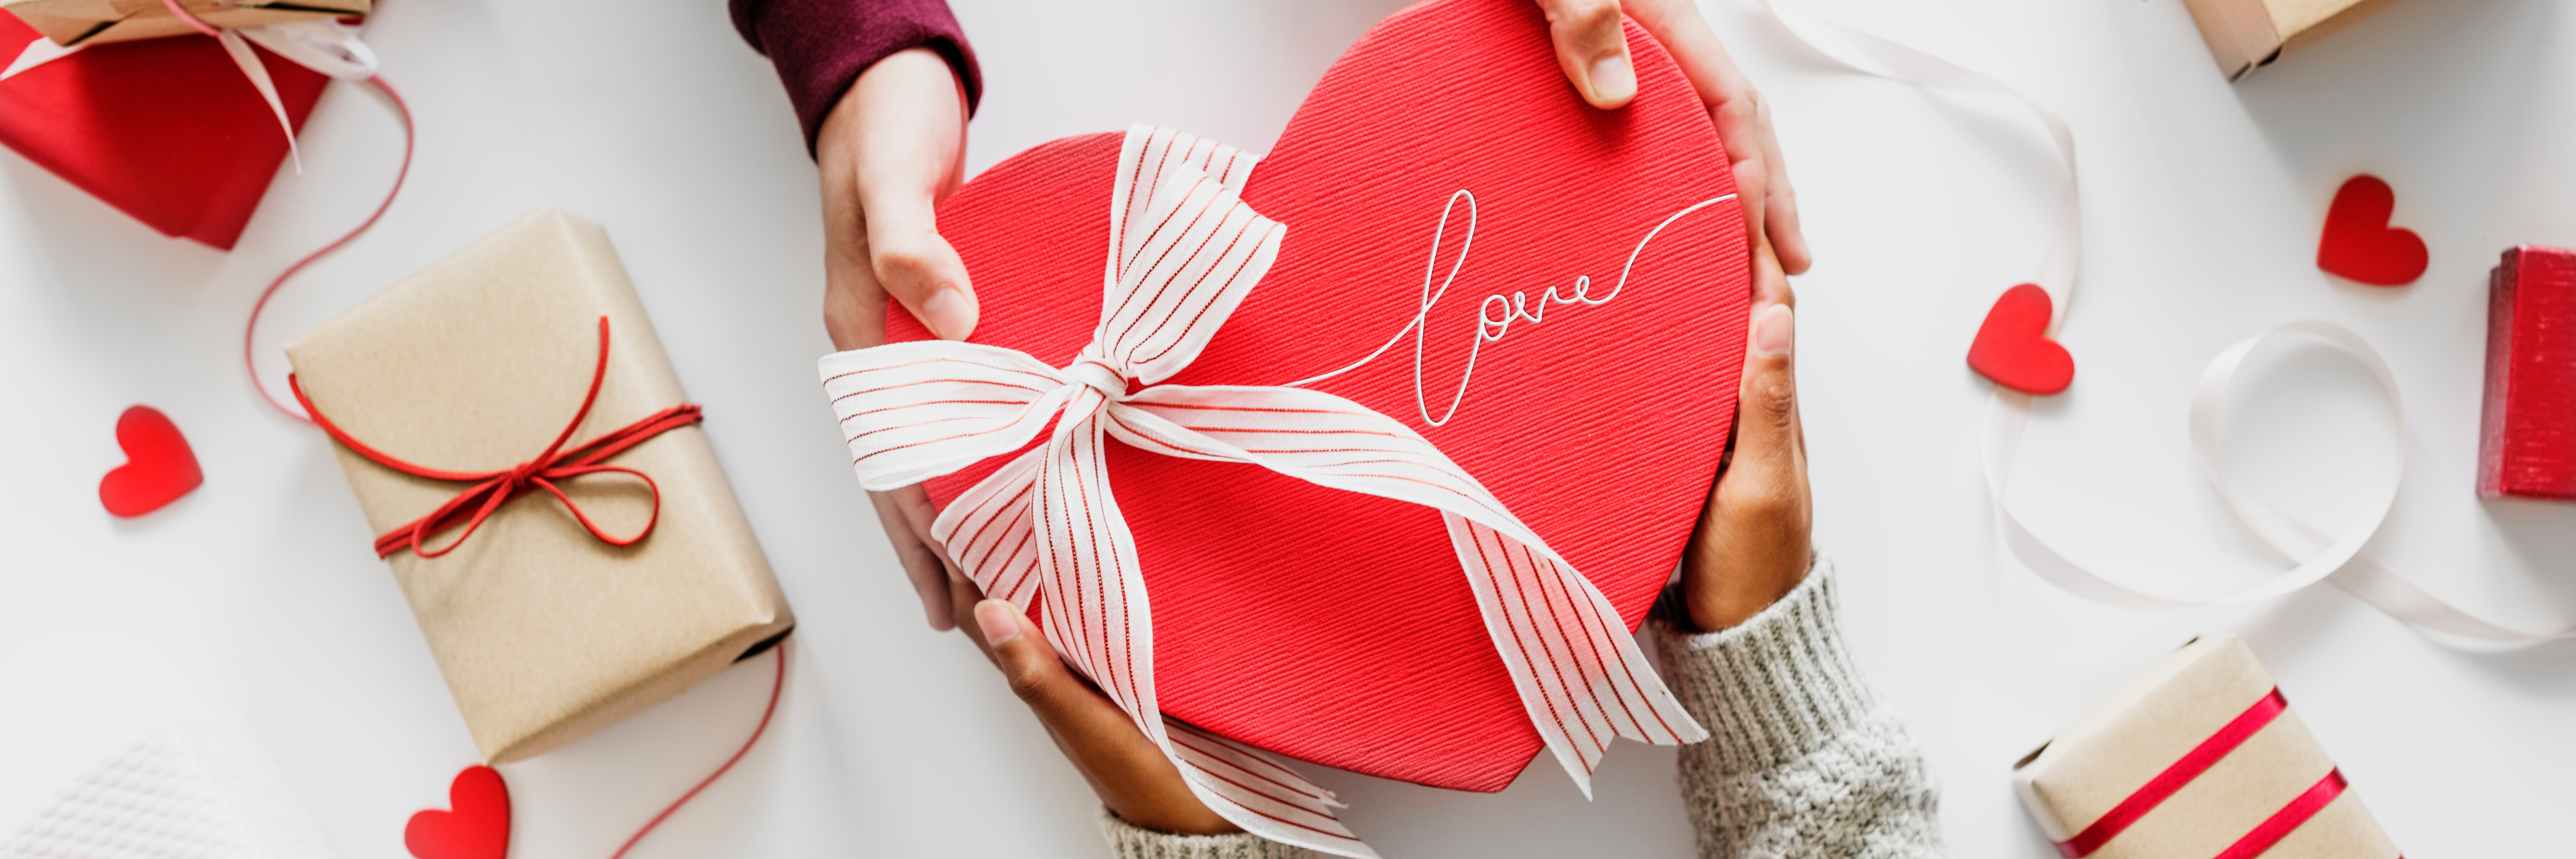 Valentine's Day Consumer Spending Trends